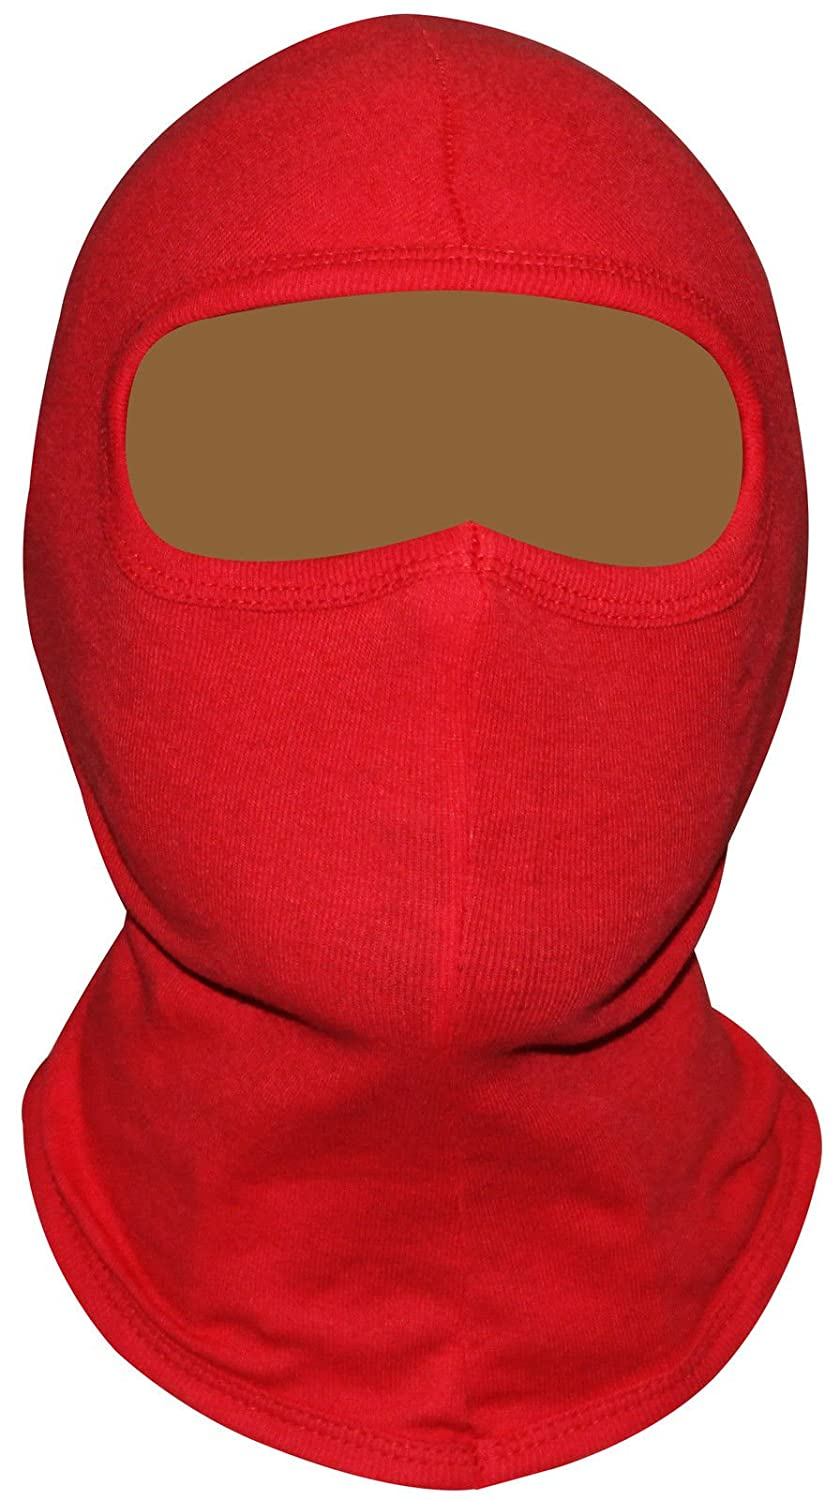 Balaclava 100% COTTON Open Face Motocycle Motobike Helmet Soft SKI - One Size PM Sports